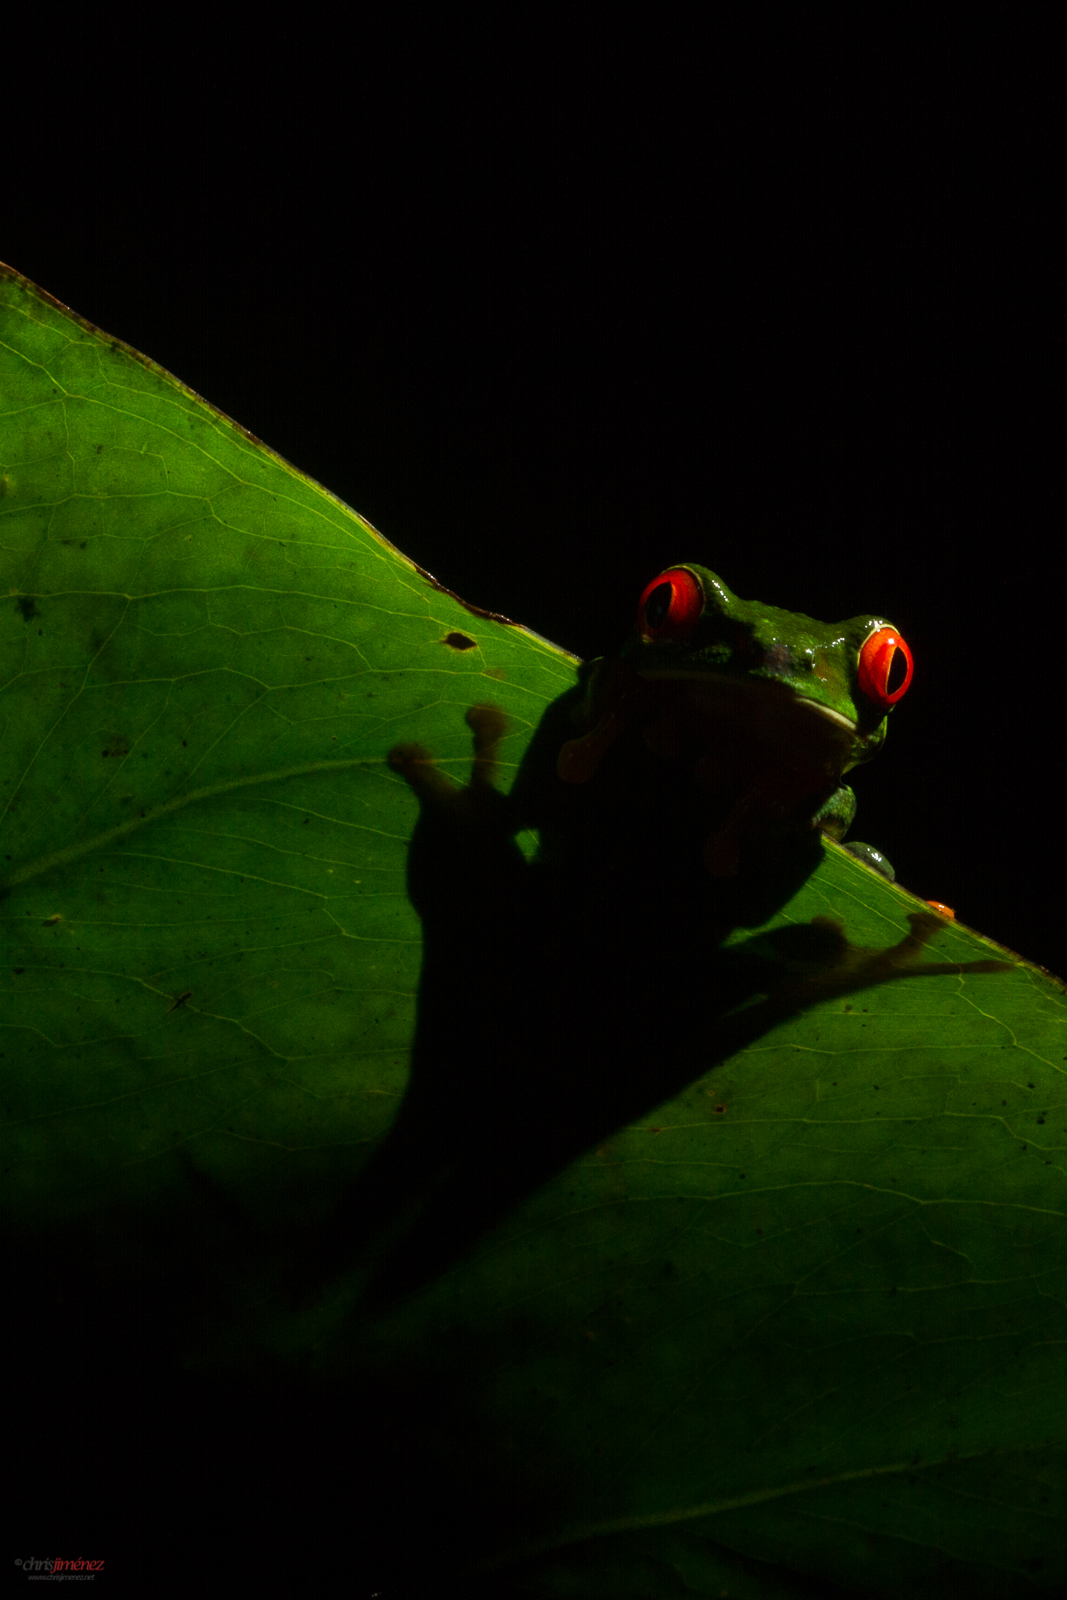 Red-eyed tree frog (Agalychnis callidryas) holding from a leaf in the night at the low lands of Costa Rica